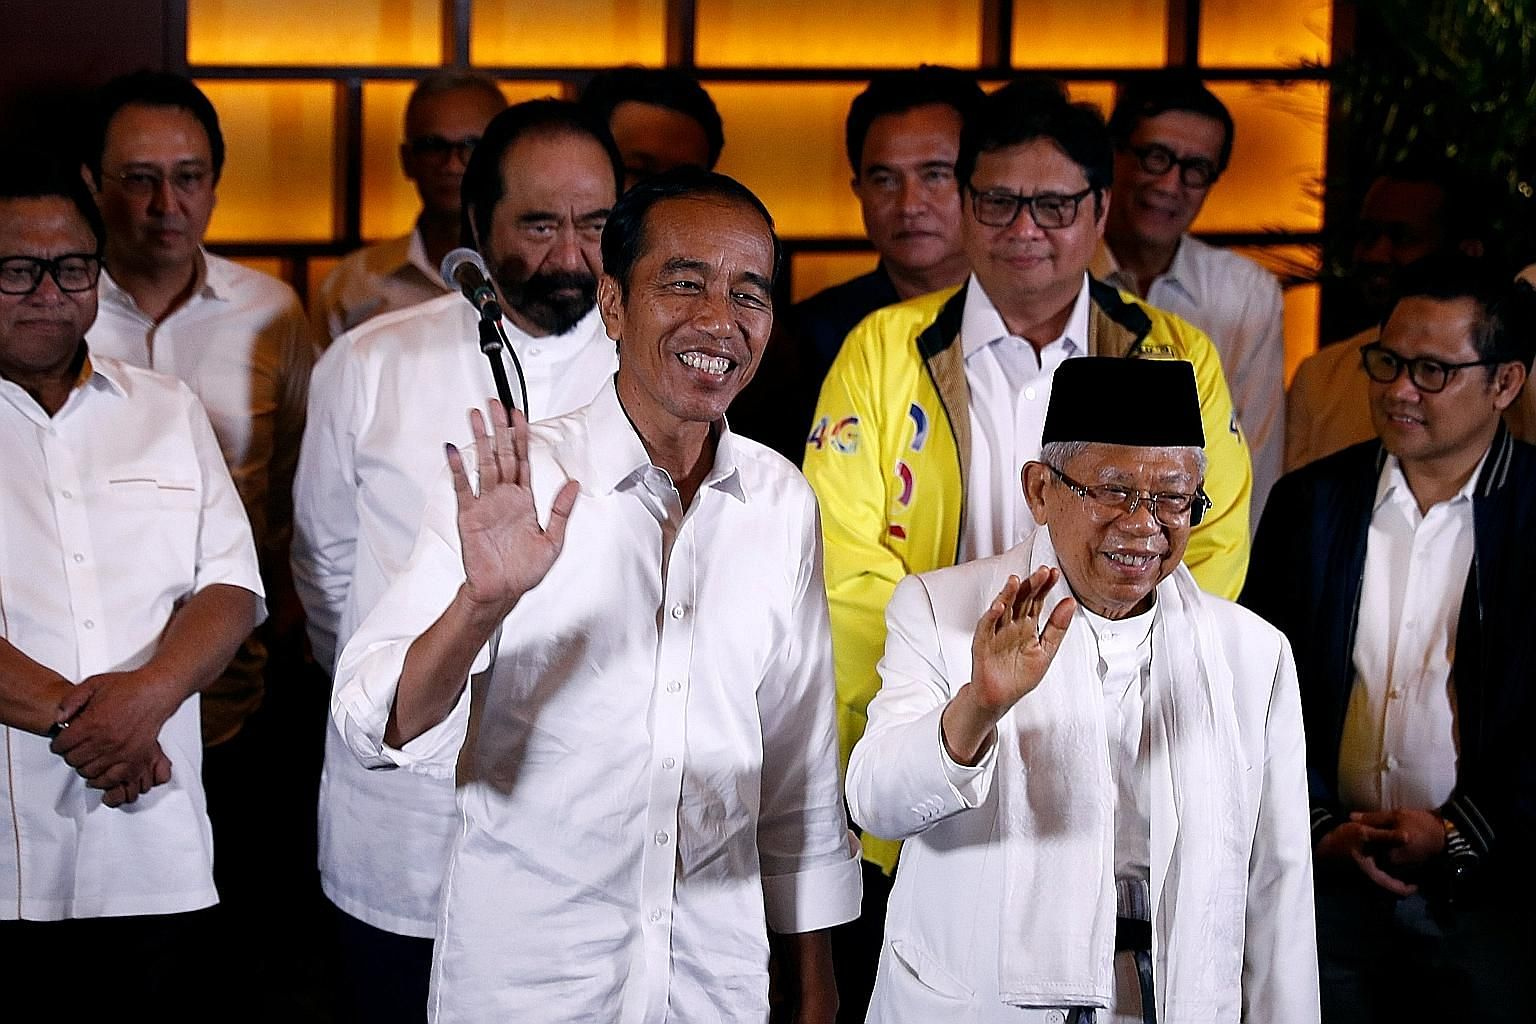 President Joko Widodo (left) and his running mate Ma'ruf Amin reacting to the quick-count results yesterday. Mr Joko called for national solidarity and appealed to his supporters to keep a low profile, following bitter elections that saw quarrels amo